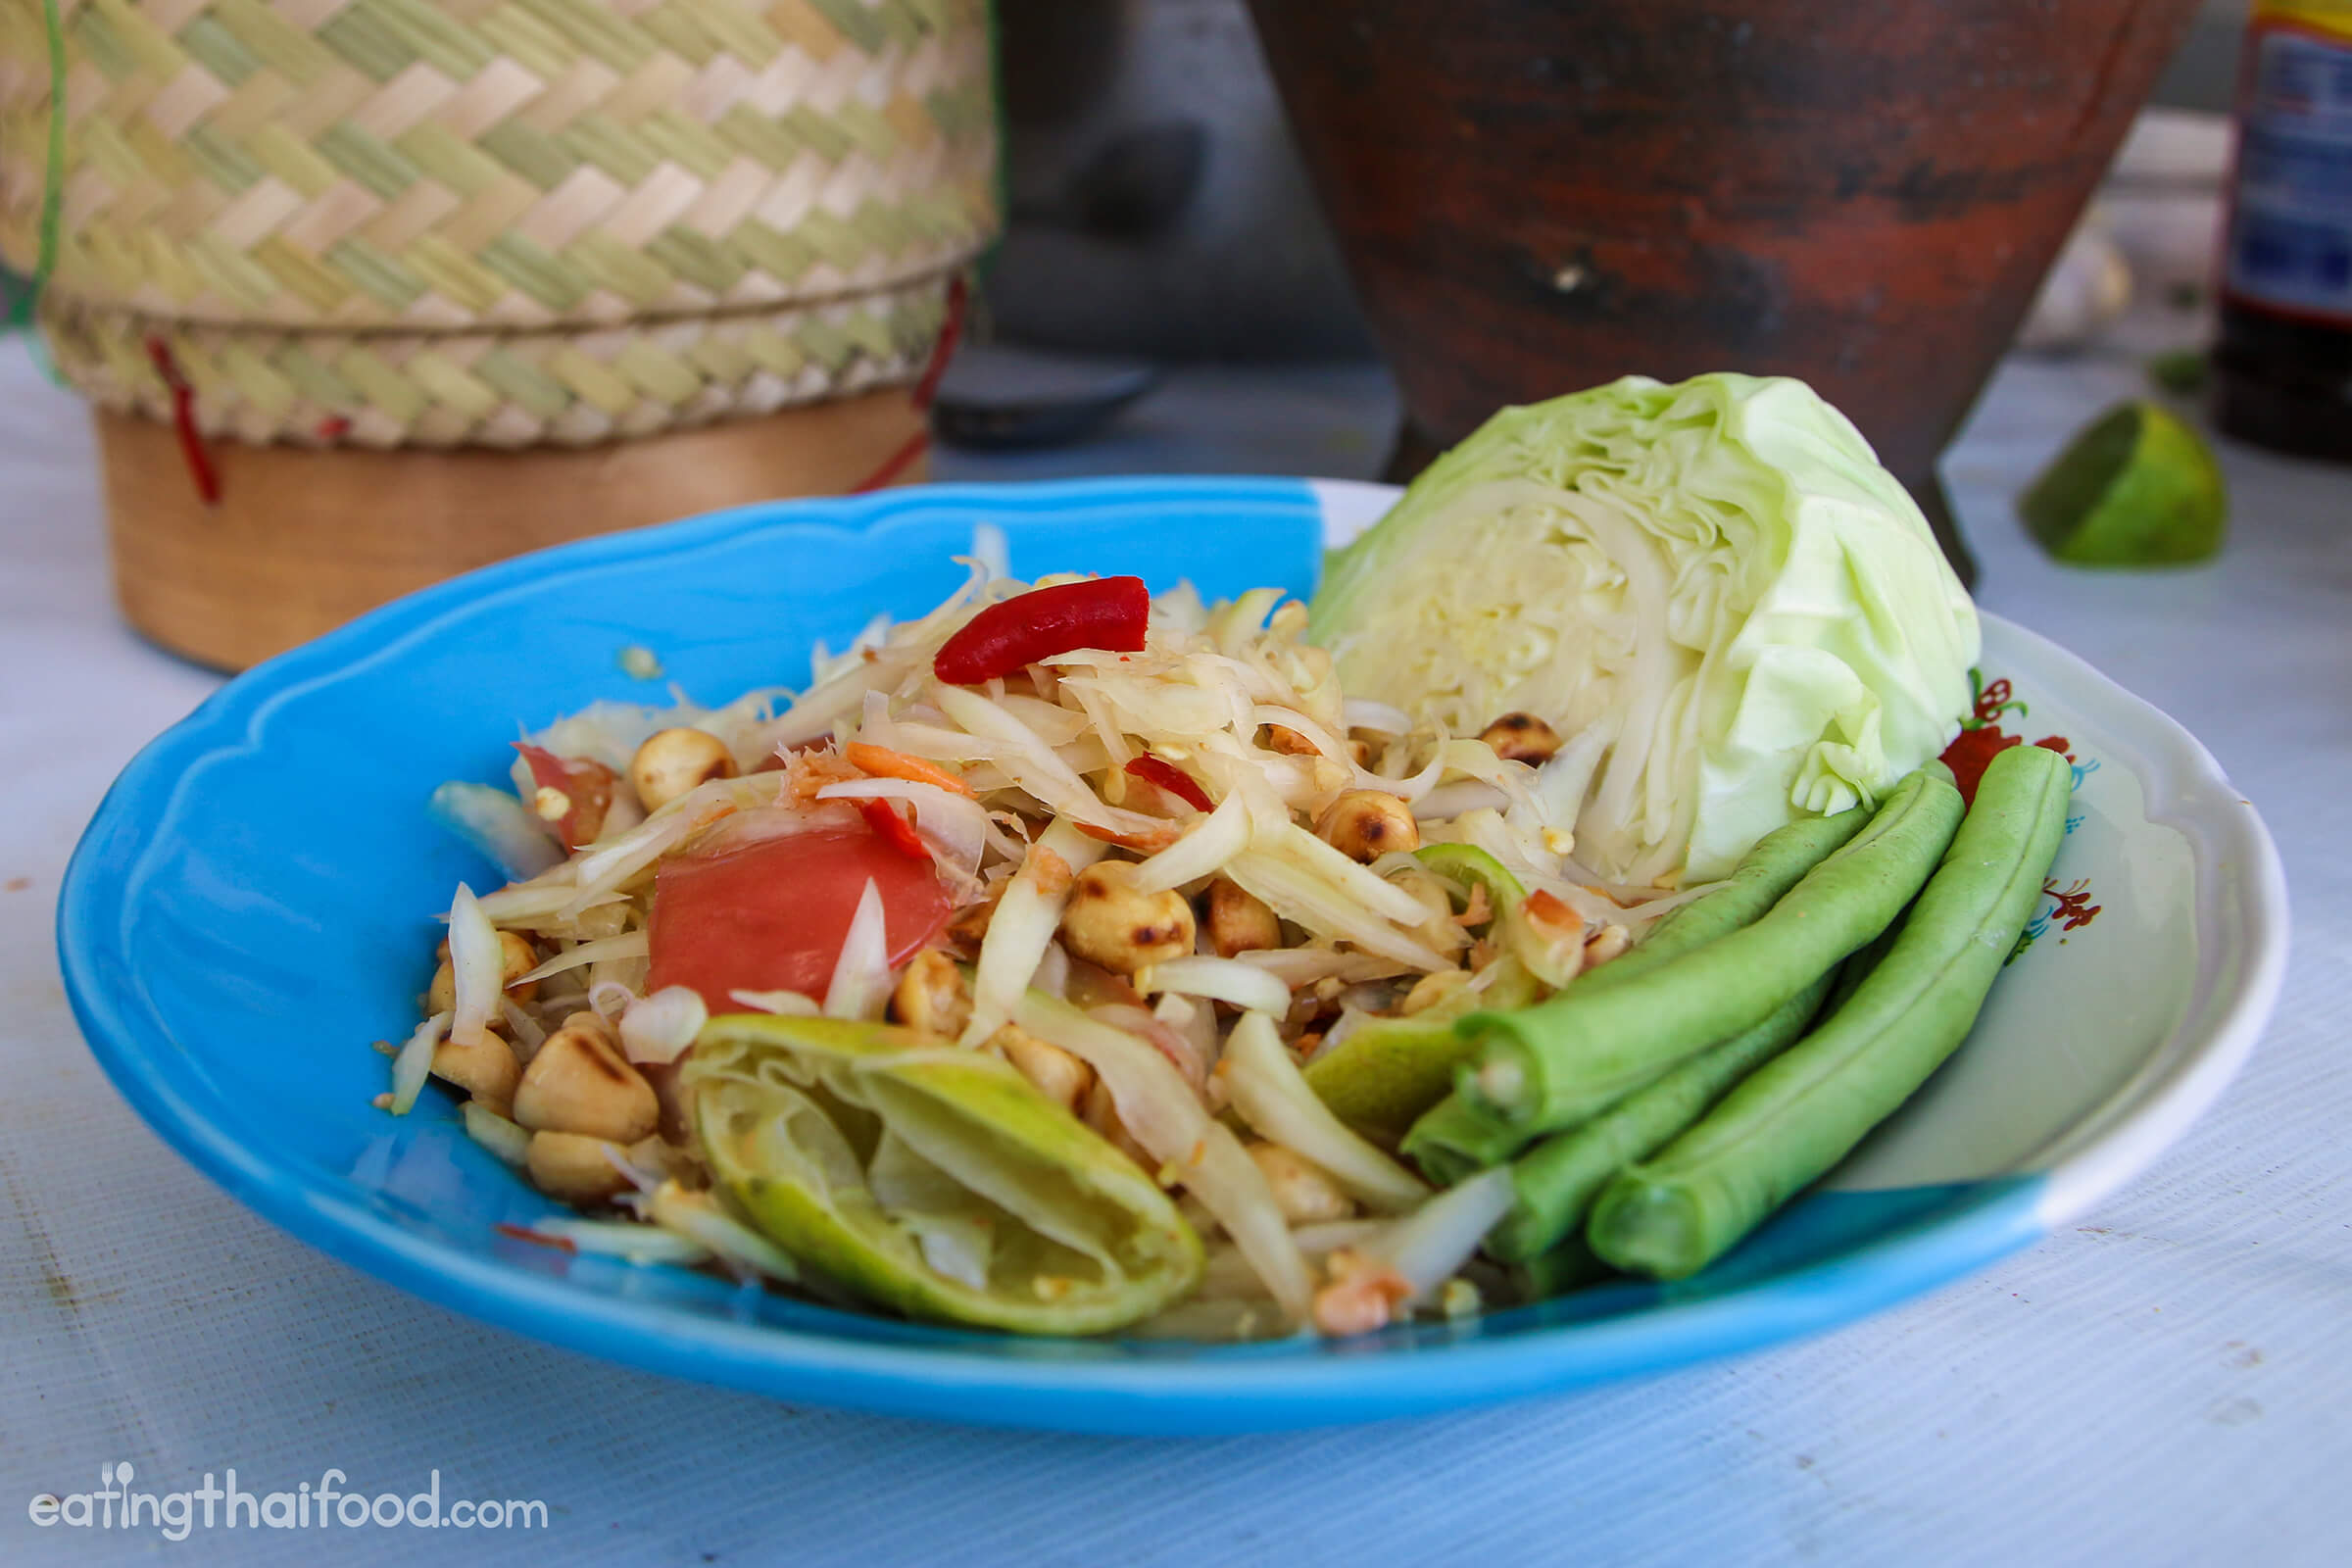 Thai recipes eating thai food thai green papaya salad recipe thai street food style forumfinder Choice Image